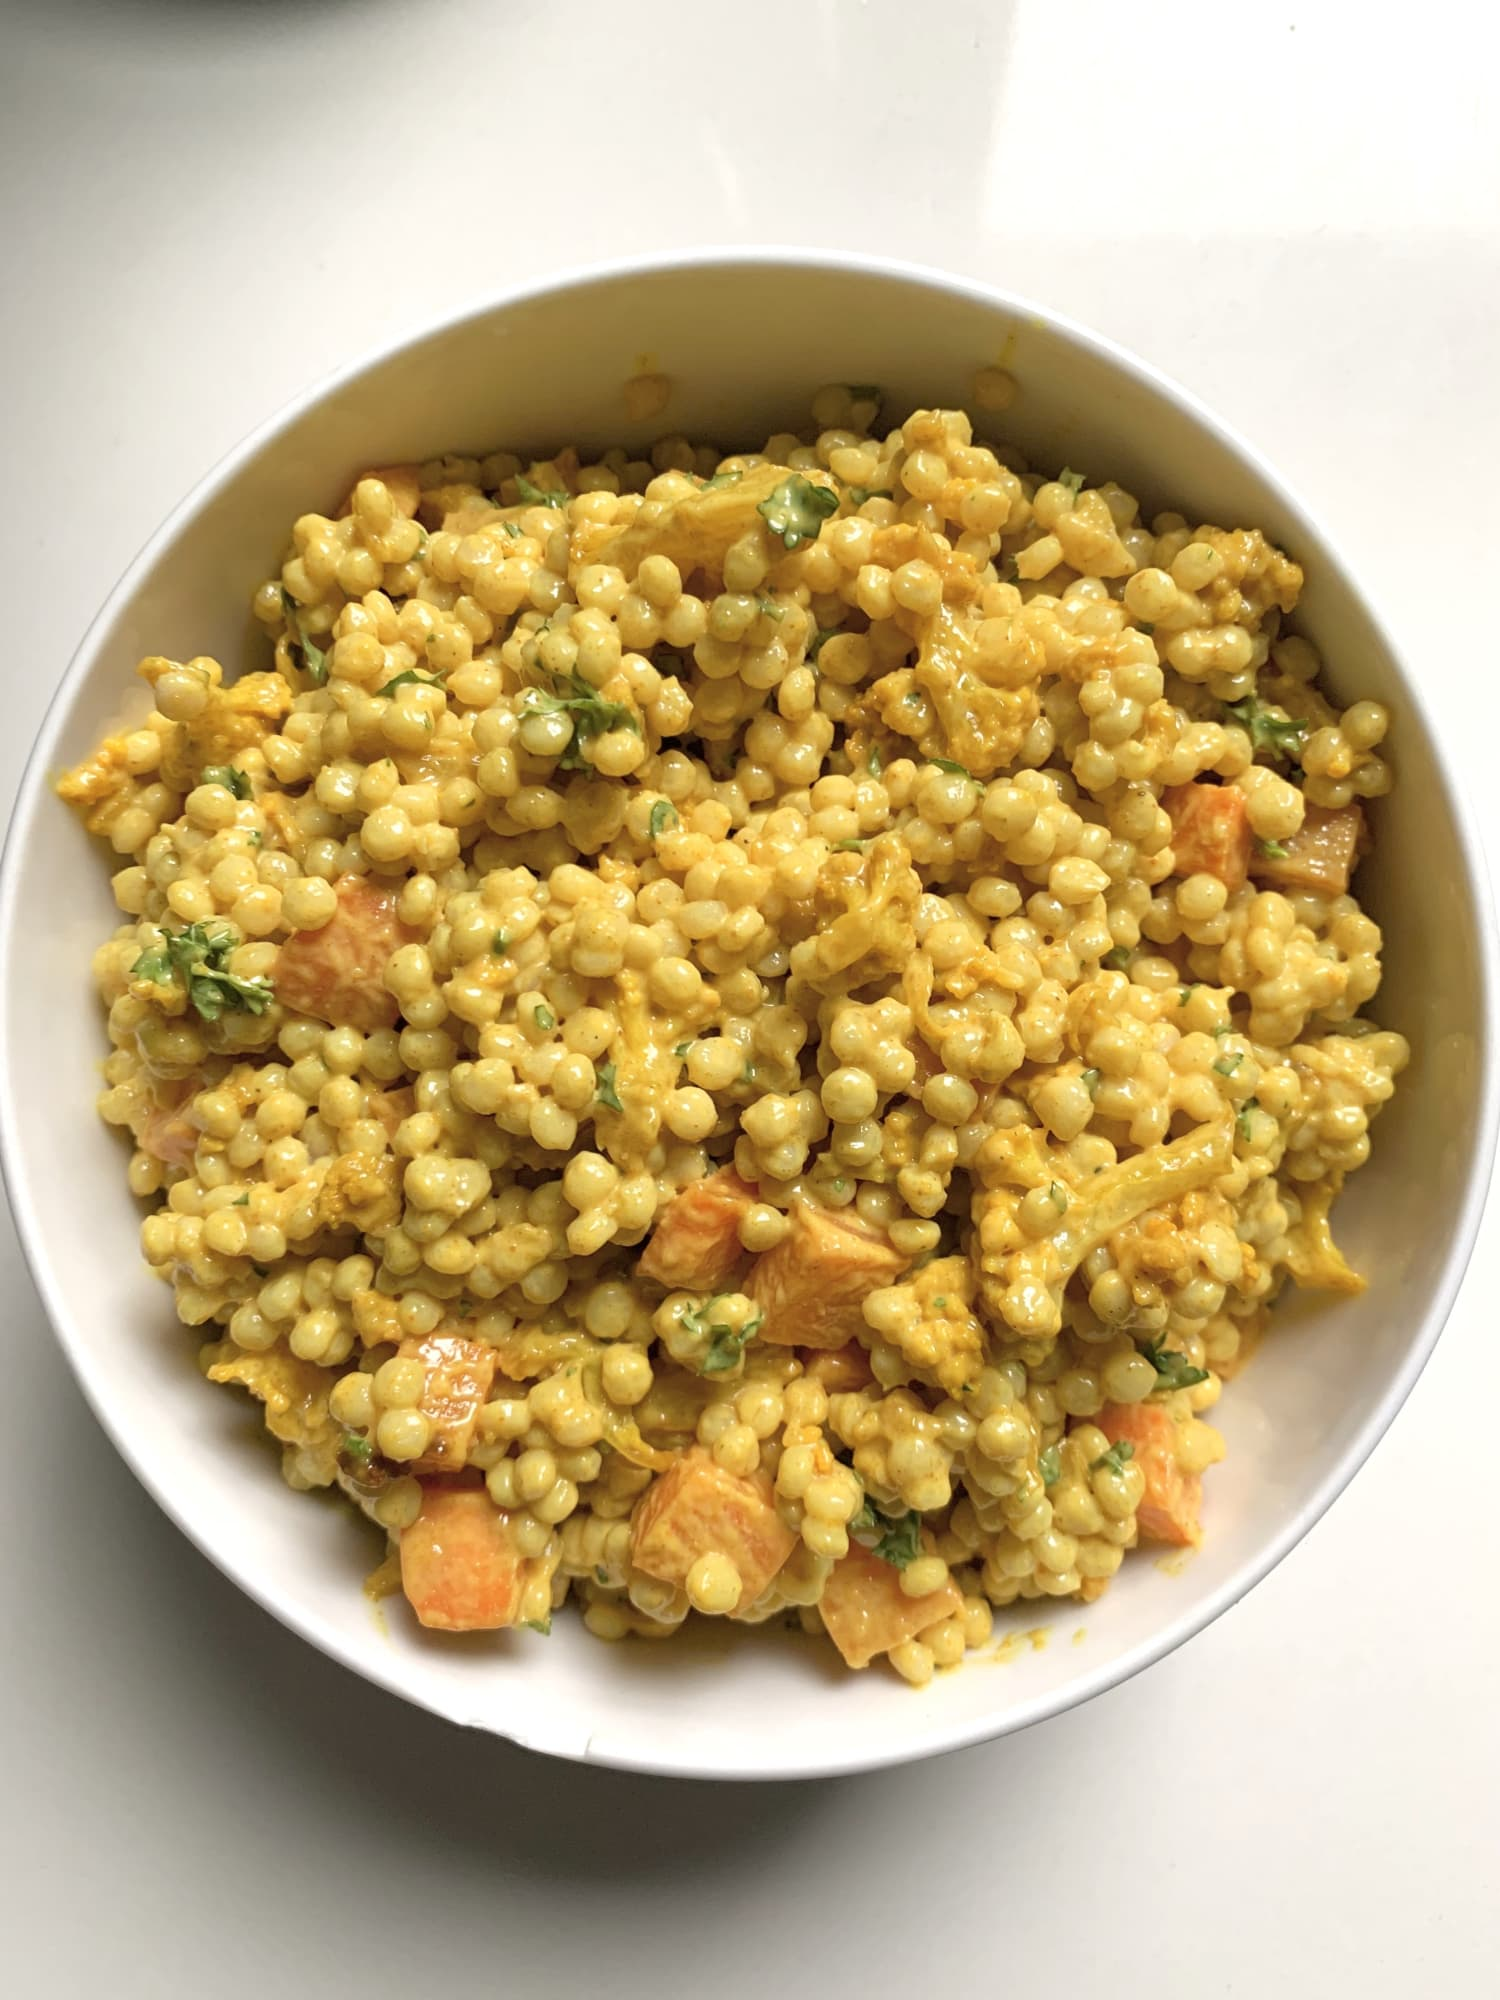 This Curried Couscous Salad Is the Only Thing I Ever Want to Eat for Lunch